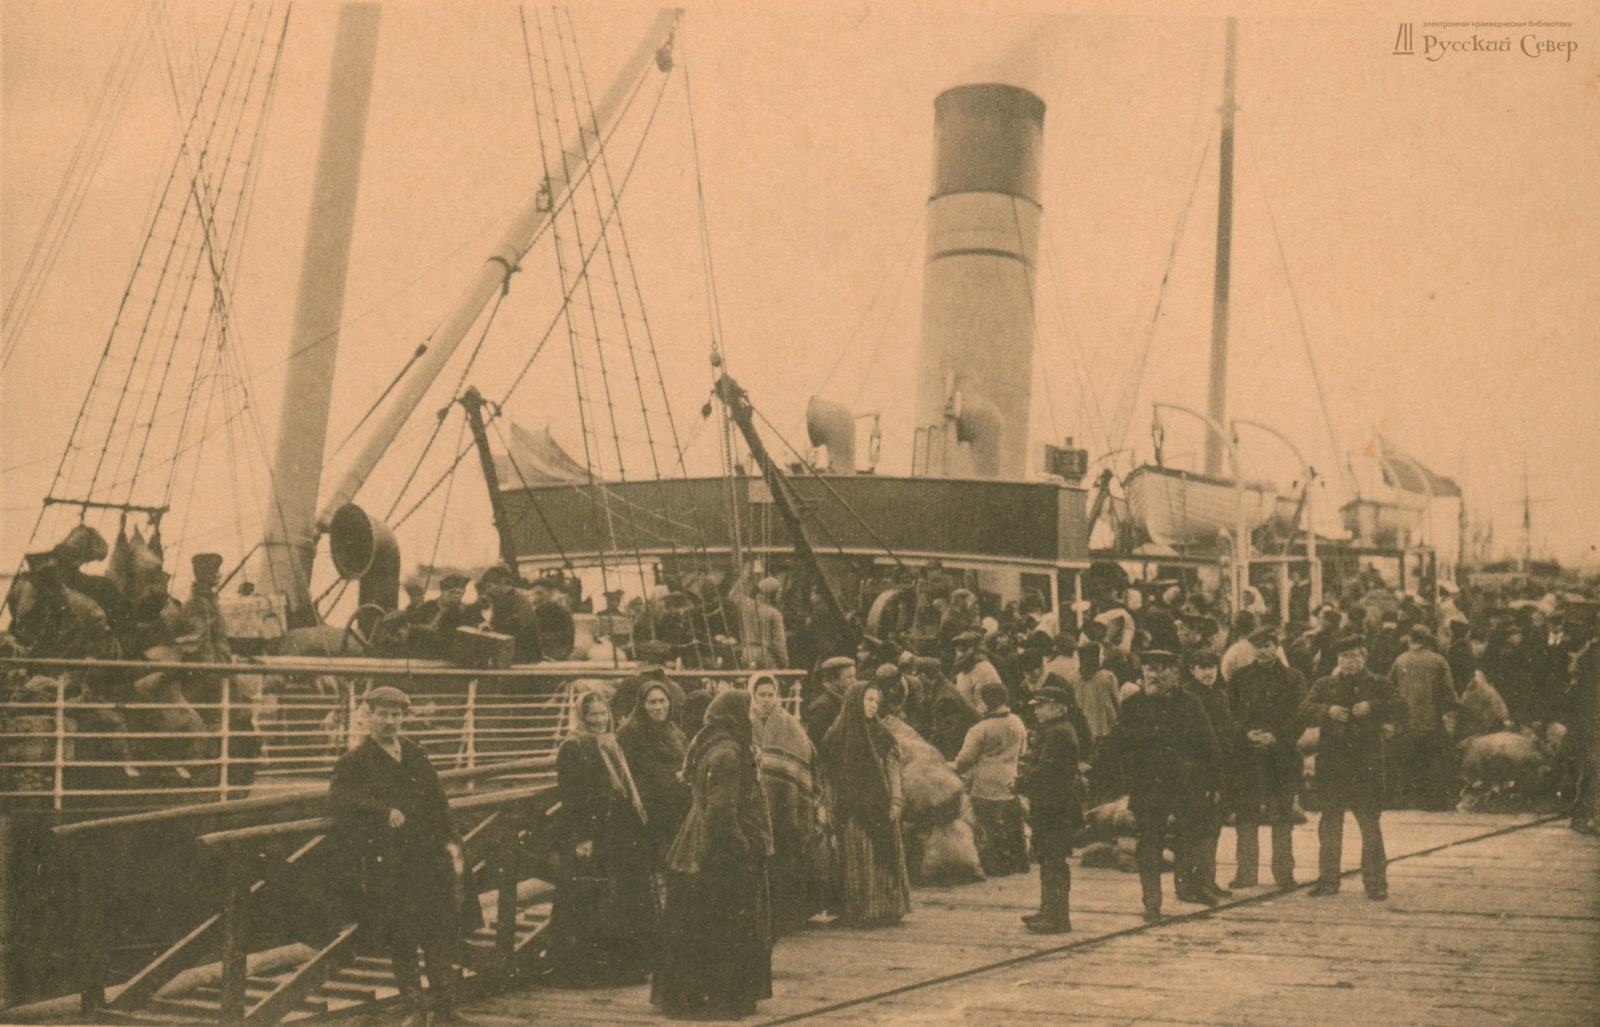 Embarkment on a Steamship, Arkhangelsk (Archangel)